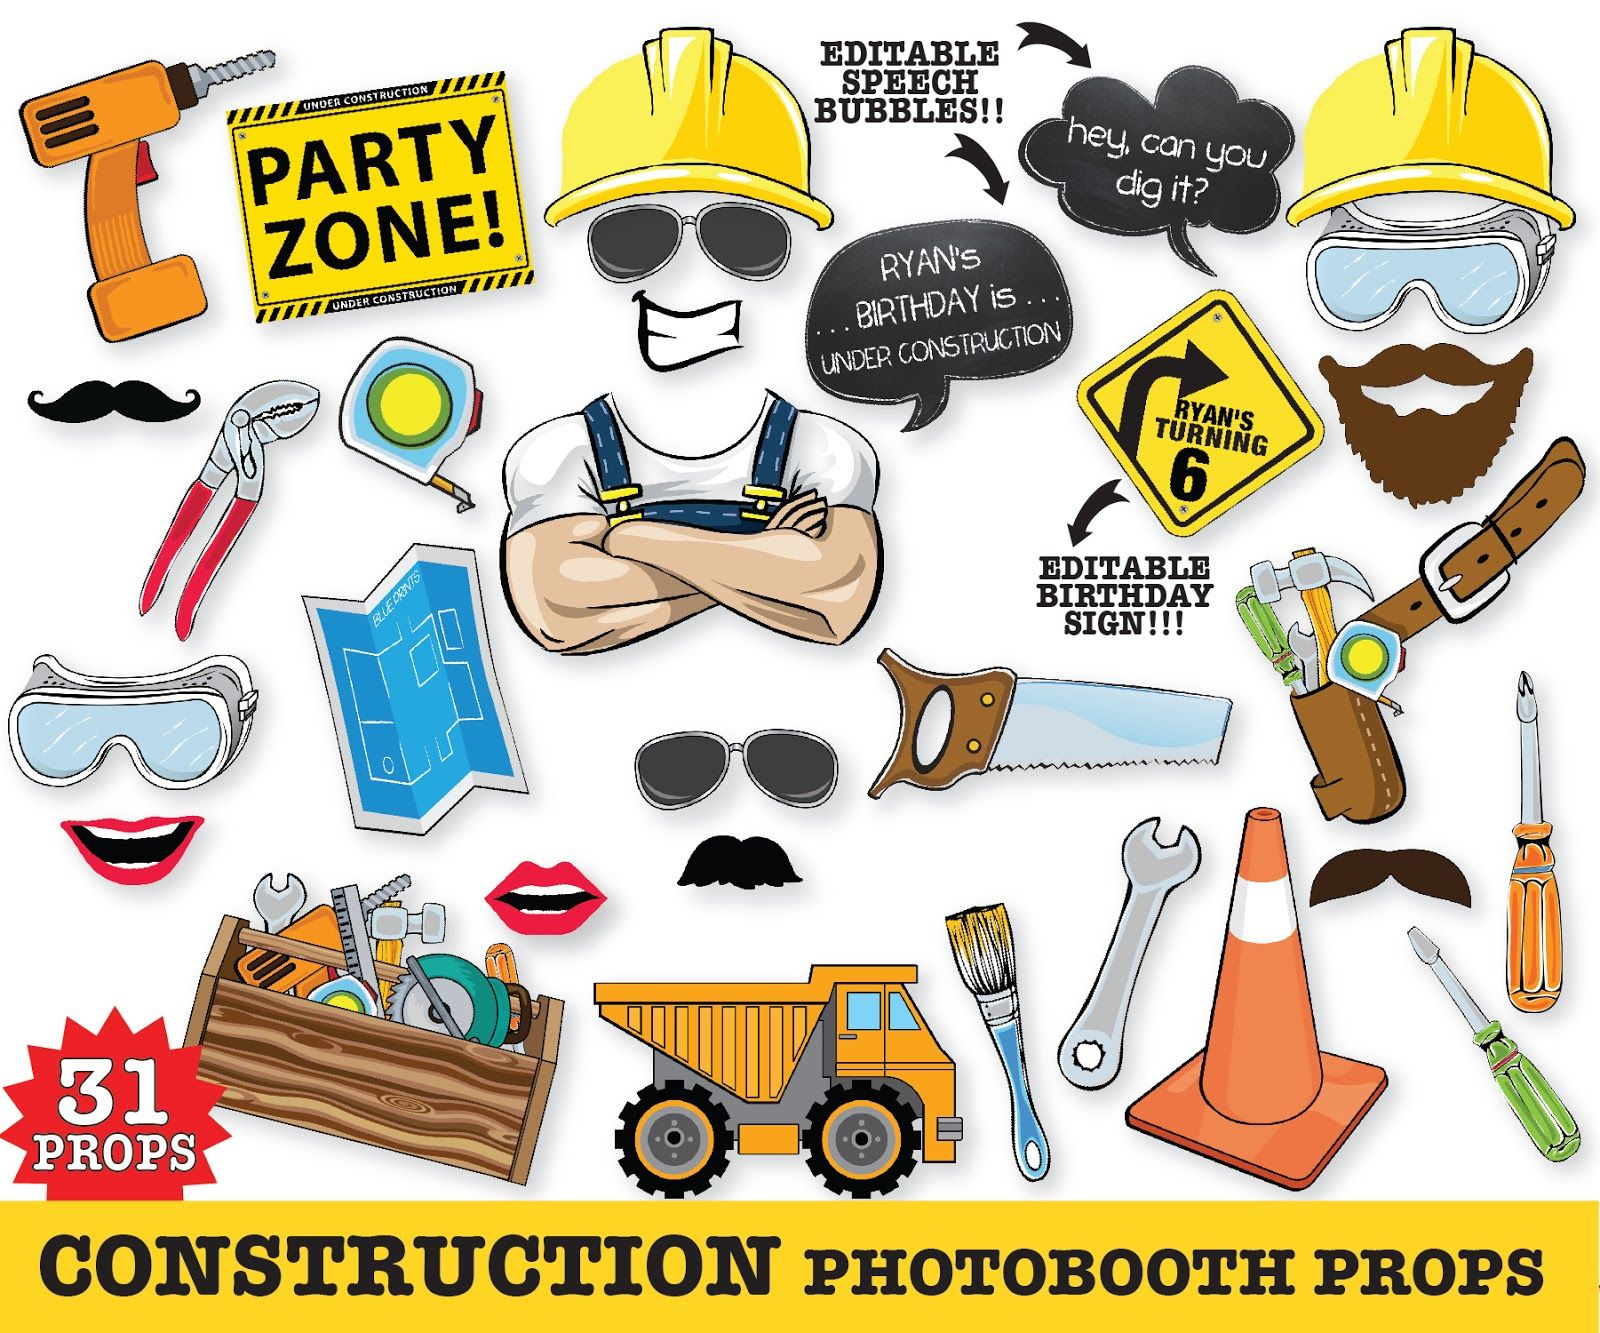 Construction photo booth props construction party construction bob the builder photo booth props truck birthday dump truck party construction baby shower diy printable pdf kit by simplyeverydayme 699 solutioingenieria Images